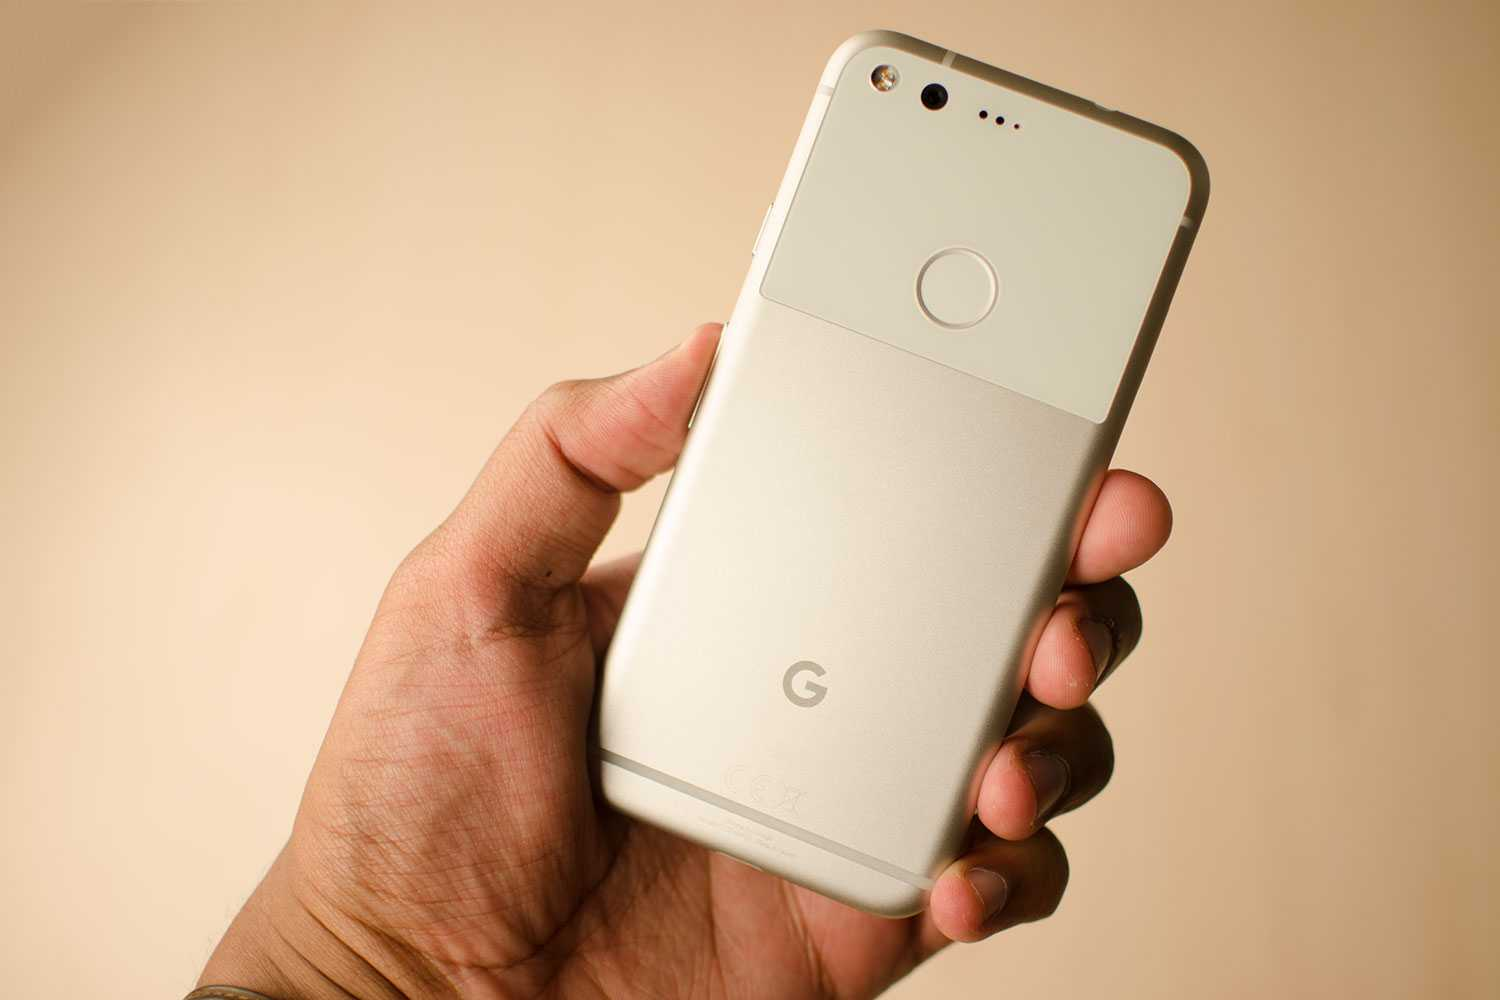 Google Pixel 2 Specs, Price, and Release Date Rumors Roundup